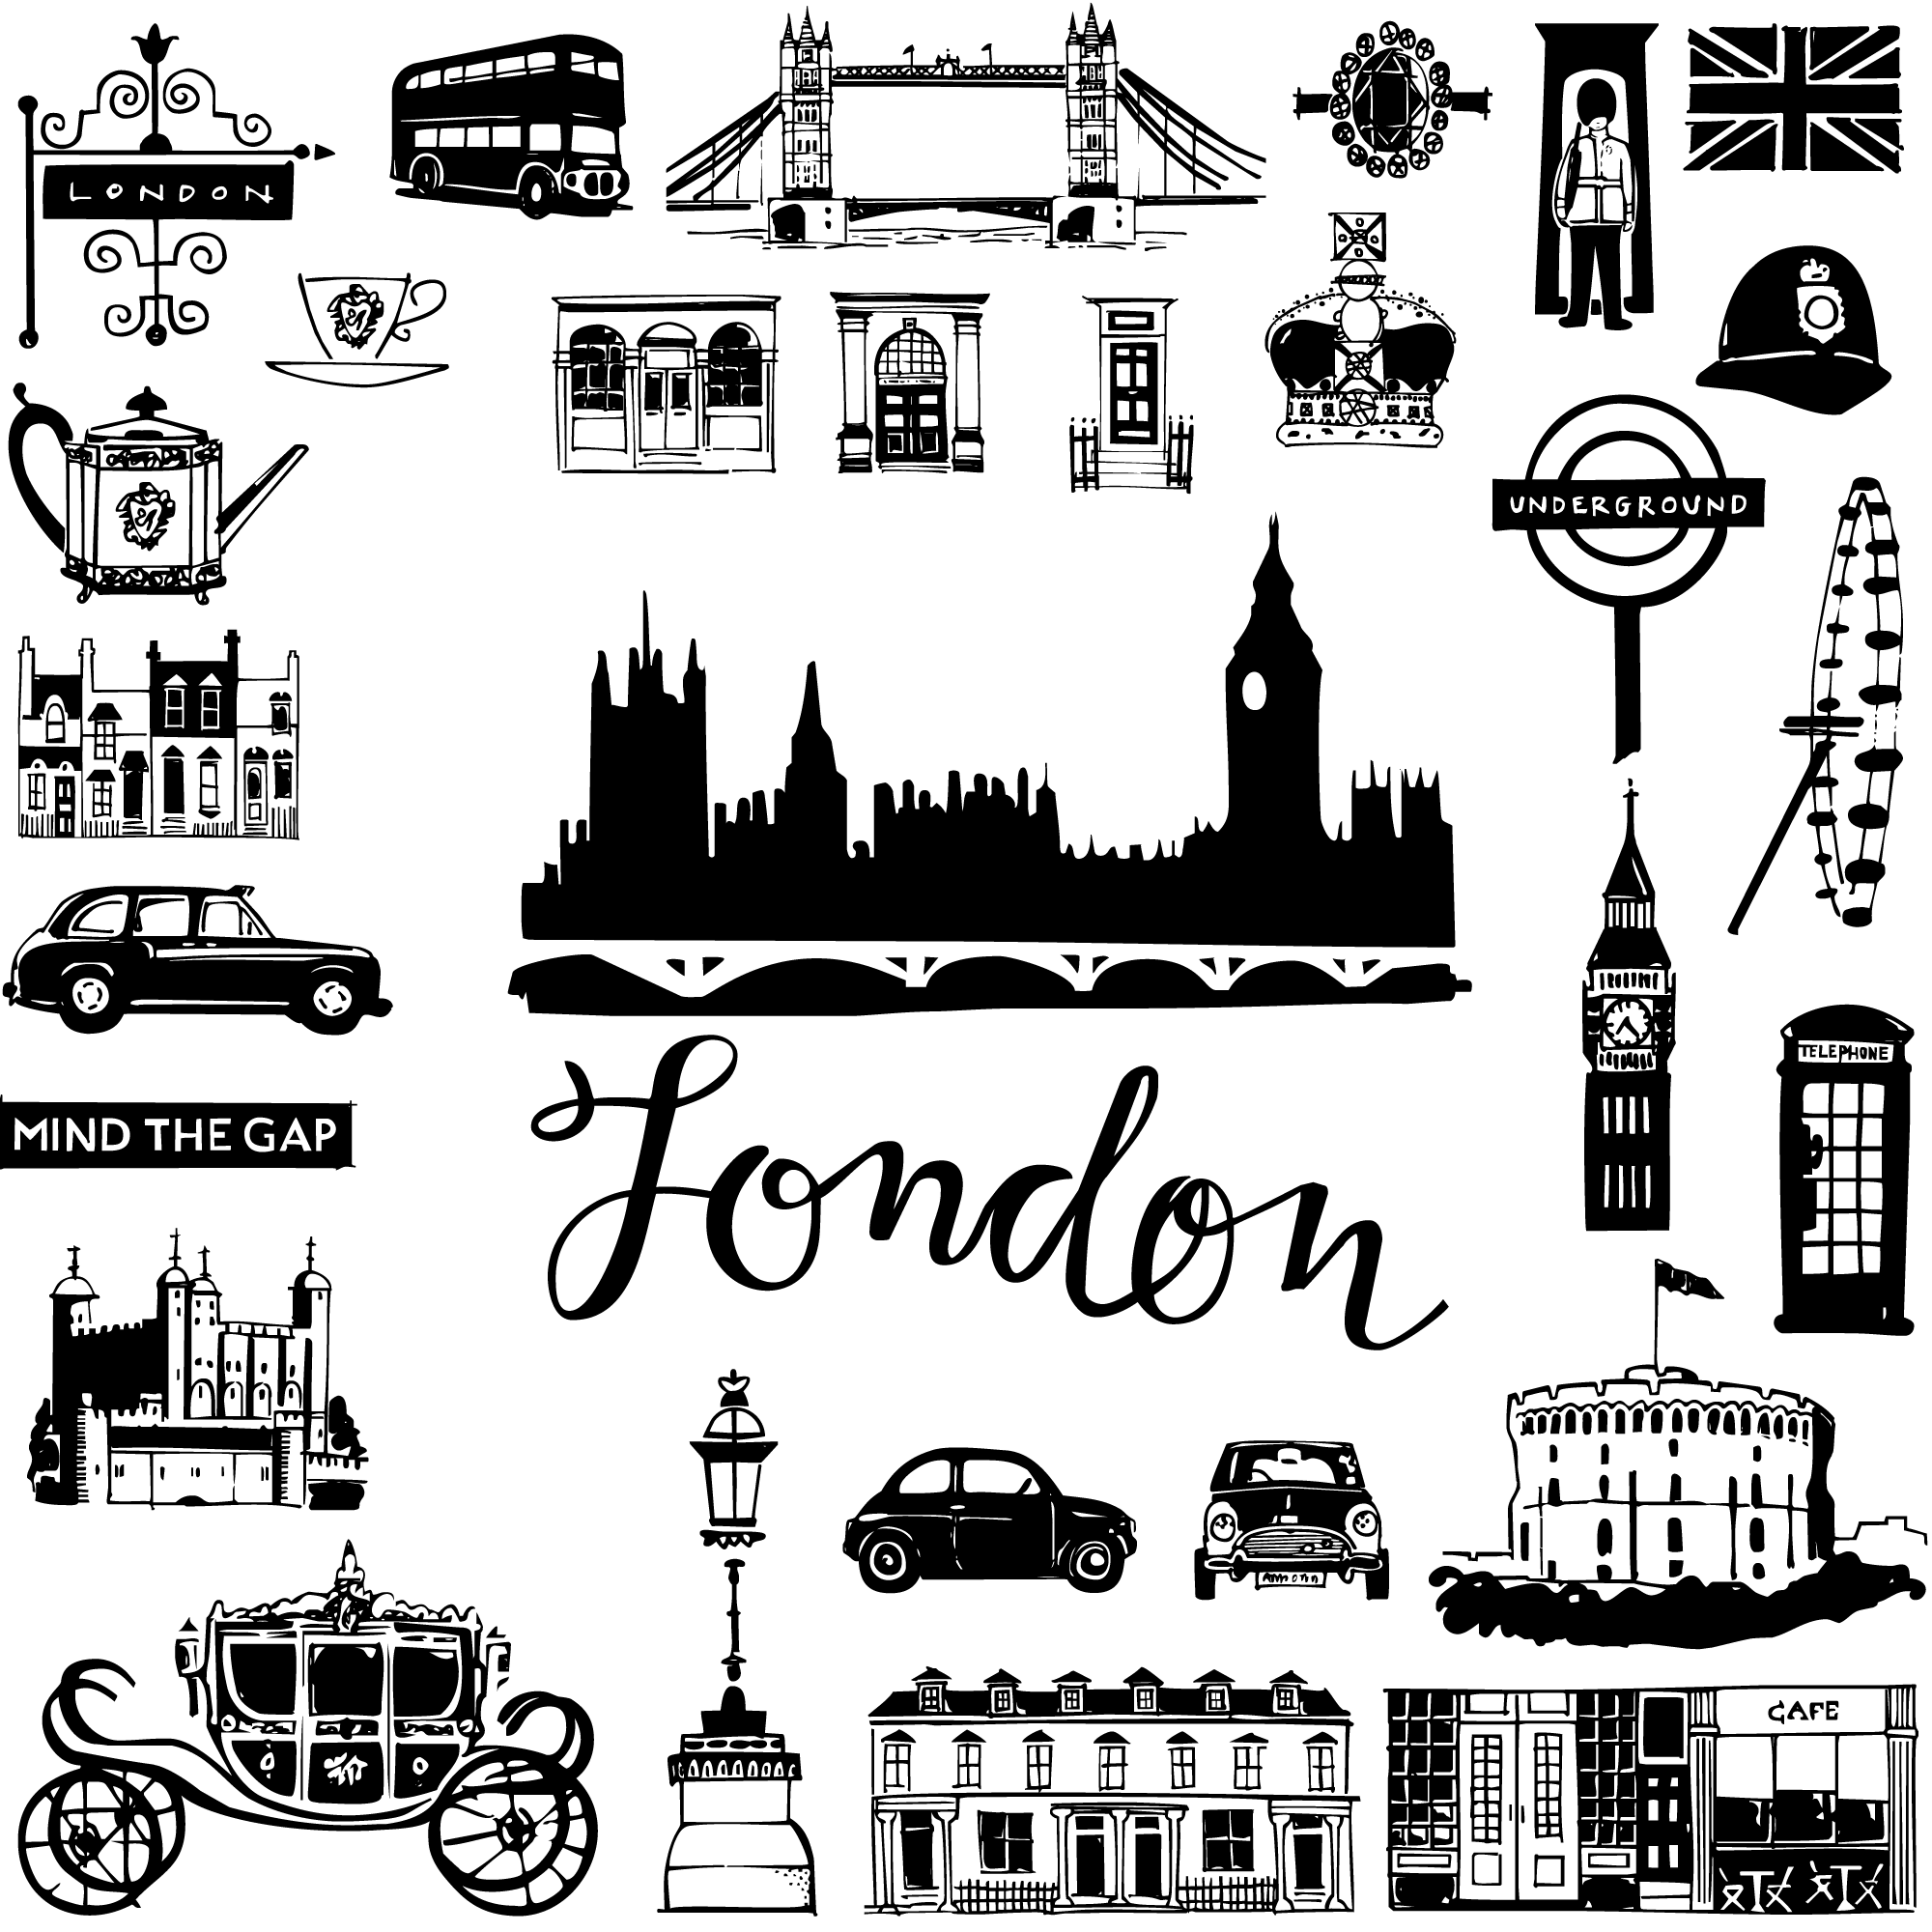 2000londondoodlesSS.png